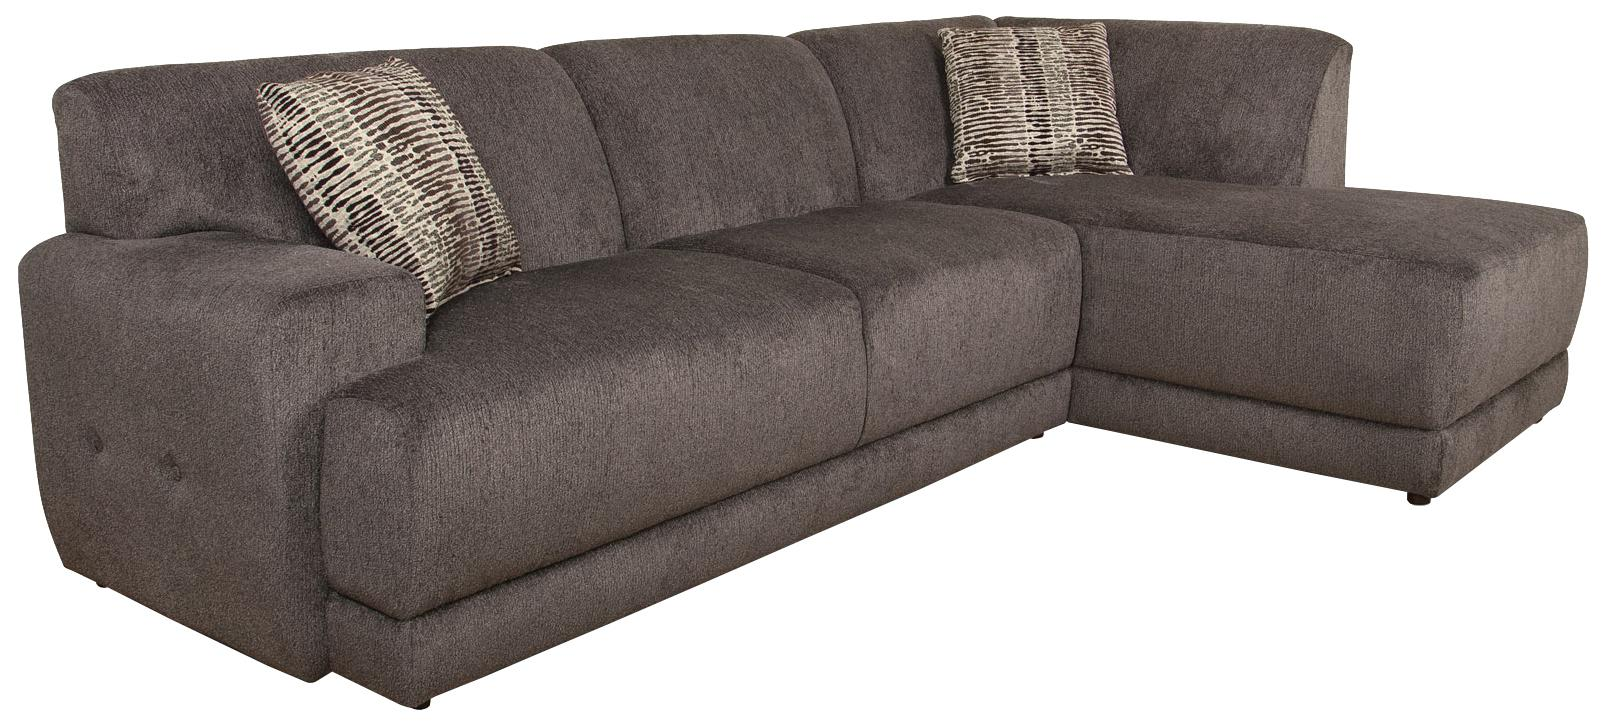 England Cole  Sectional Sofa with Right Facing Chaise - Item Number: 2880-24+05